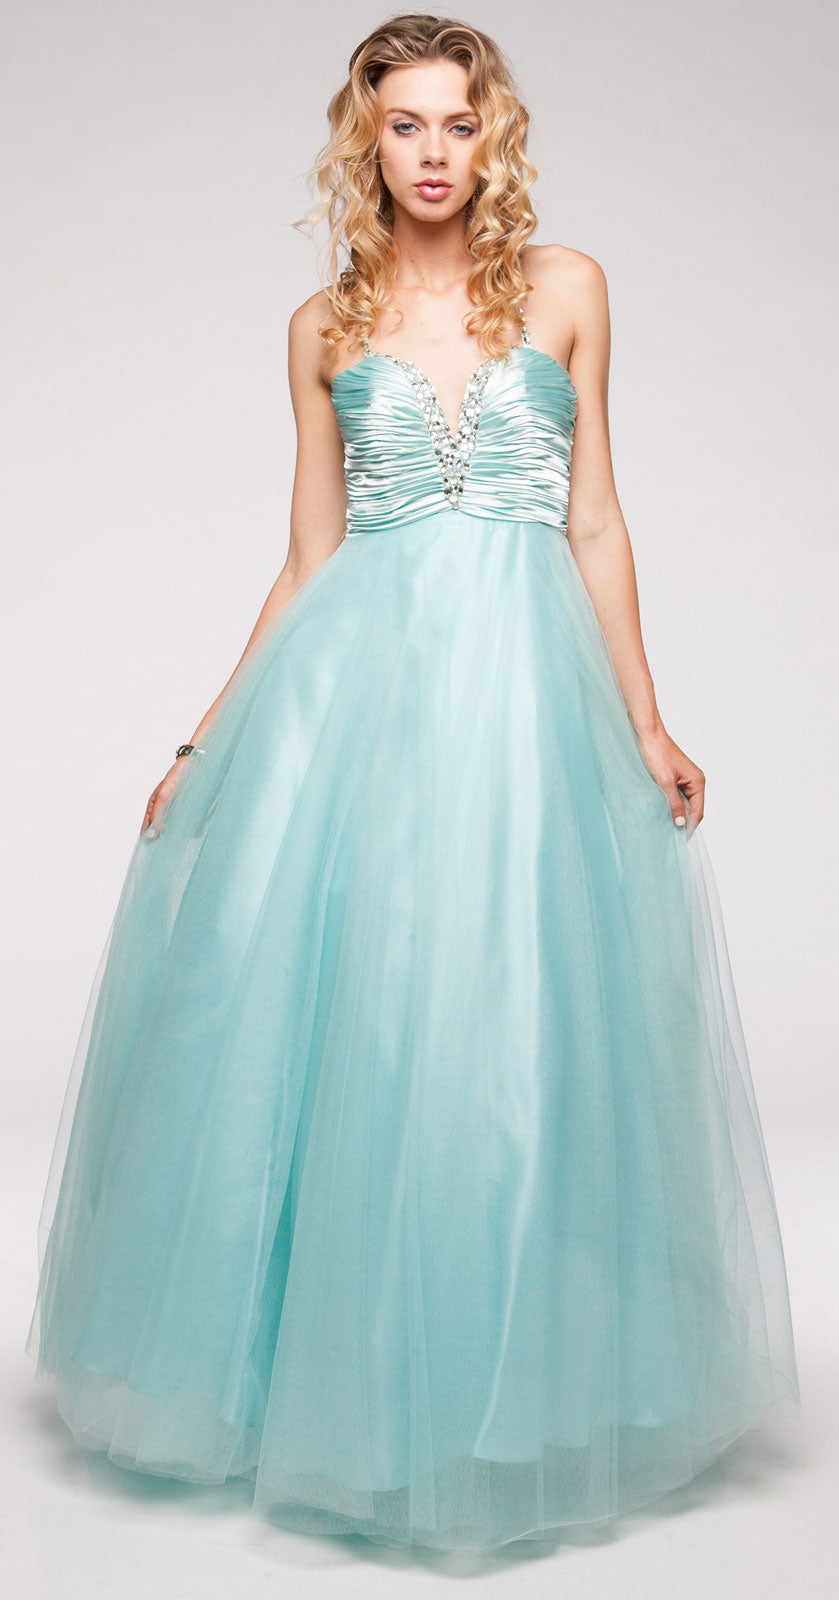 Image of V-neck Satin Bodice Puffy Mesh Skirt Formal Prom Dress in alternative picture